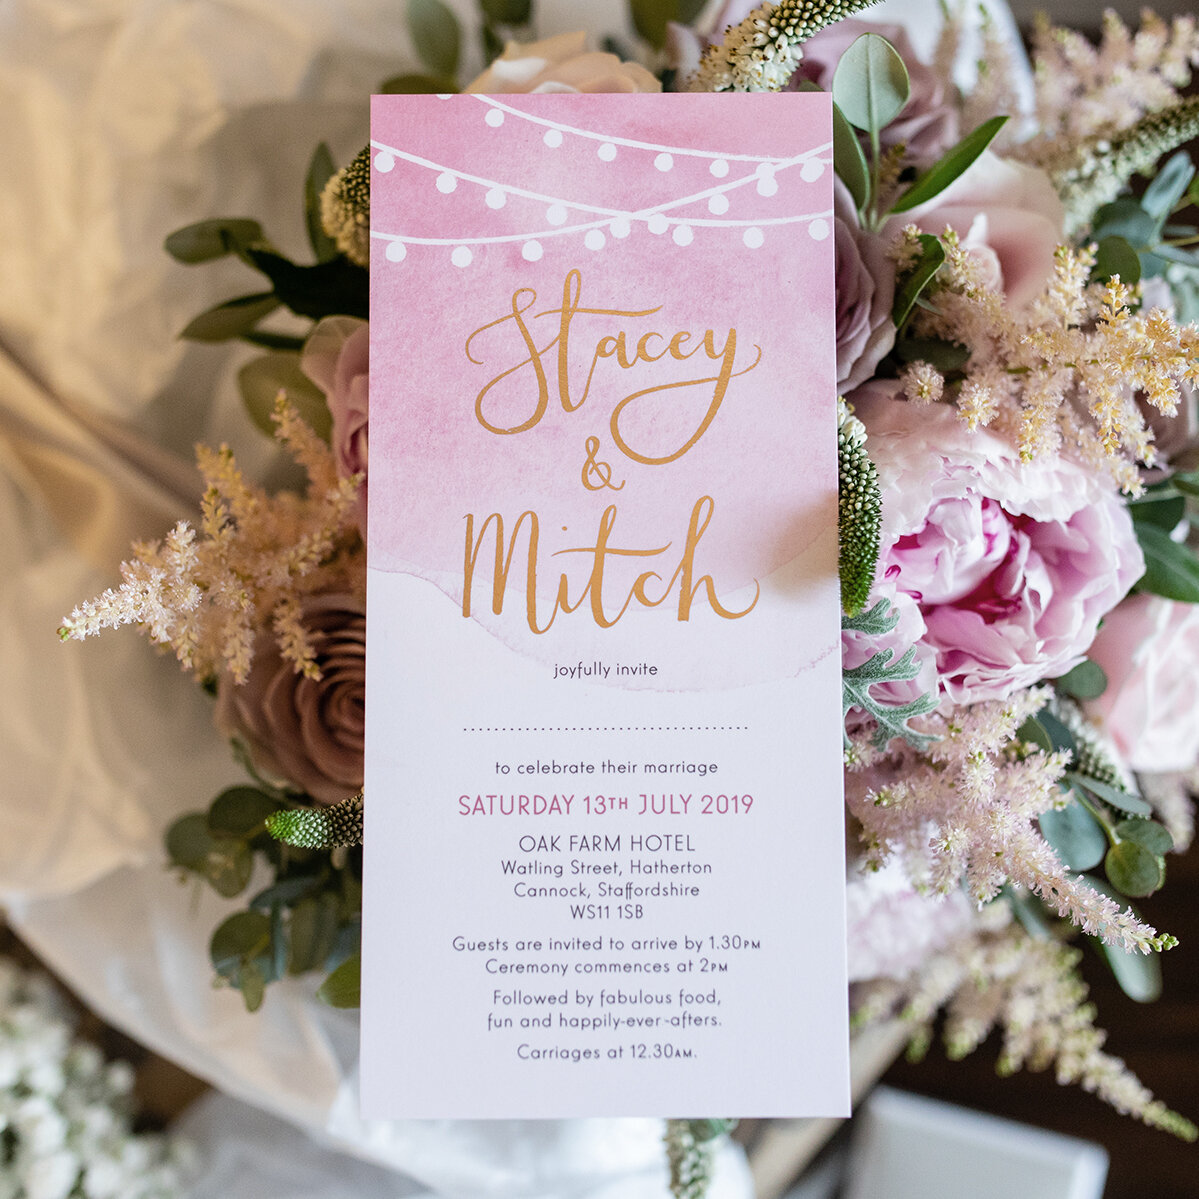 Stacey and Mitch opted for a soft blush and rose gold colour scheme for their classic wedding and so we created this classic watercolour design featuring rose gold lettering.